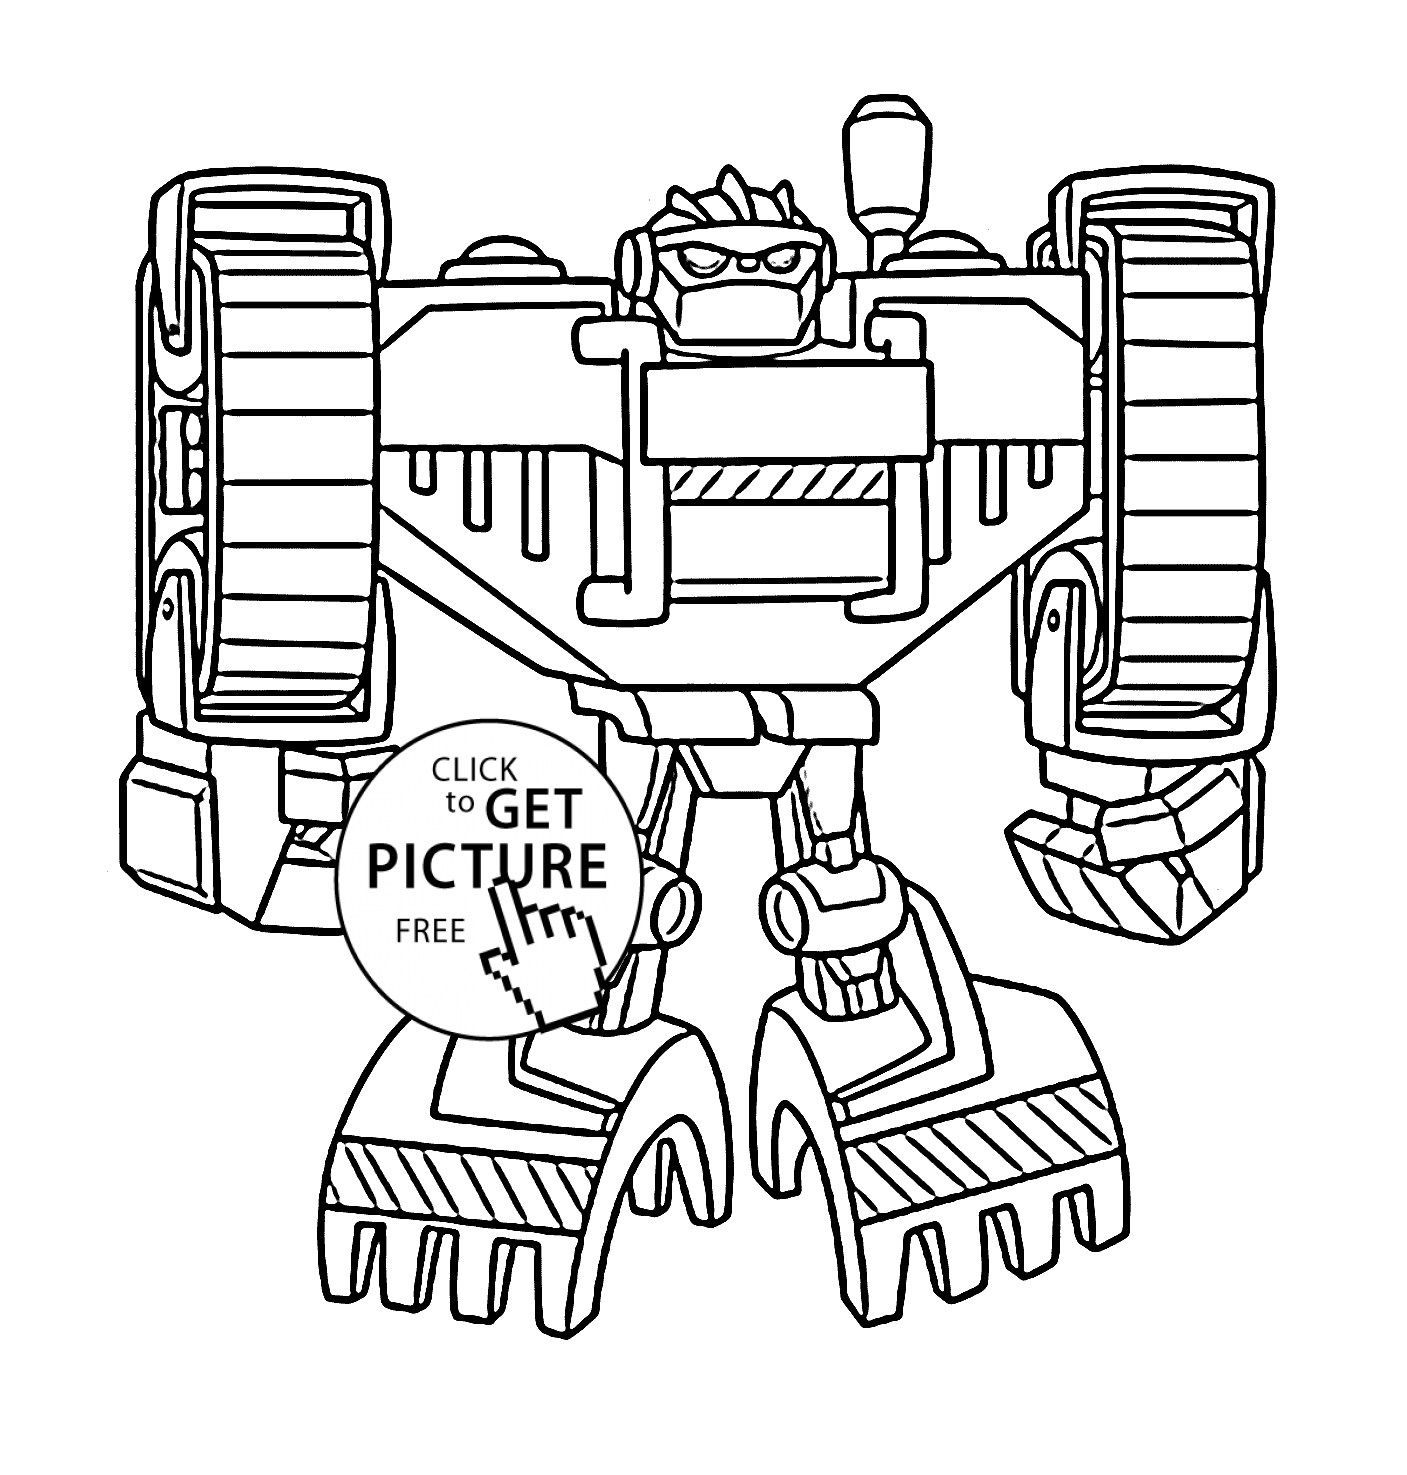 22 Brilliant Image Of Rescue Bots Coloring Pages Transformers